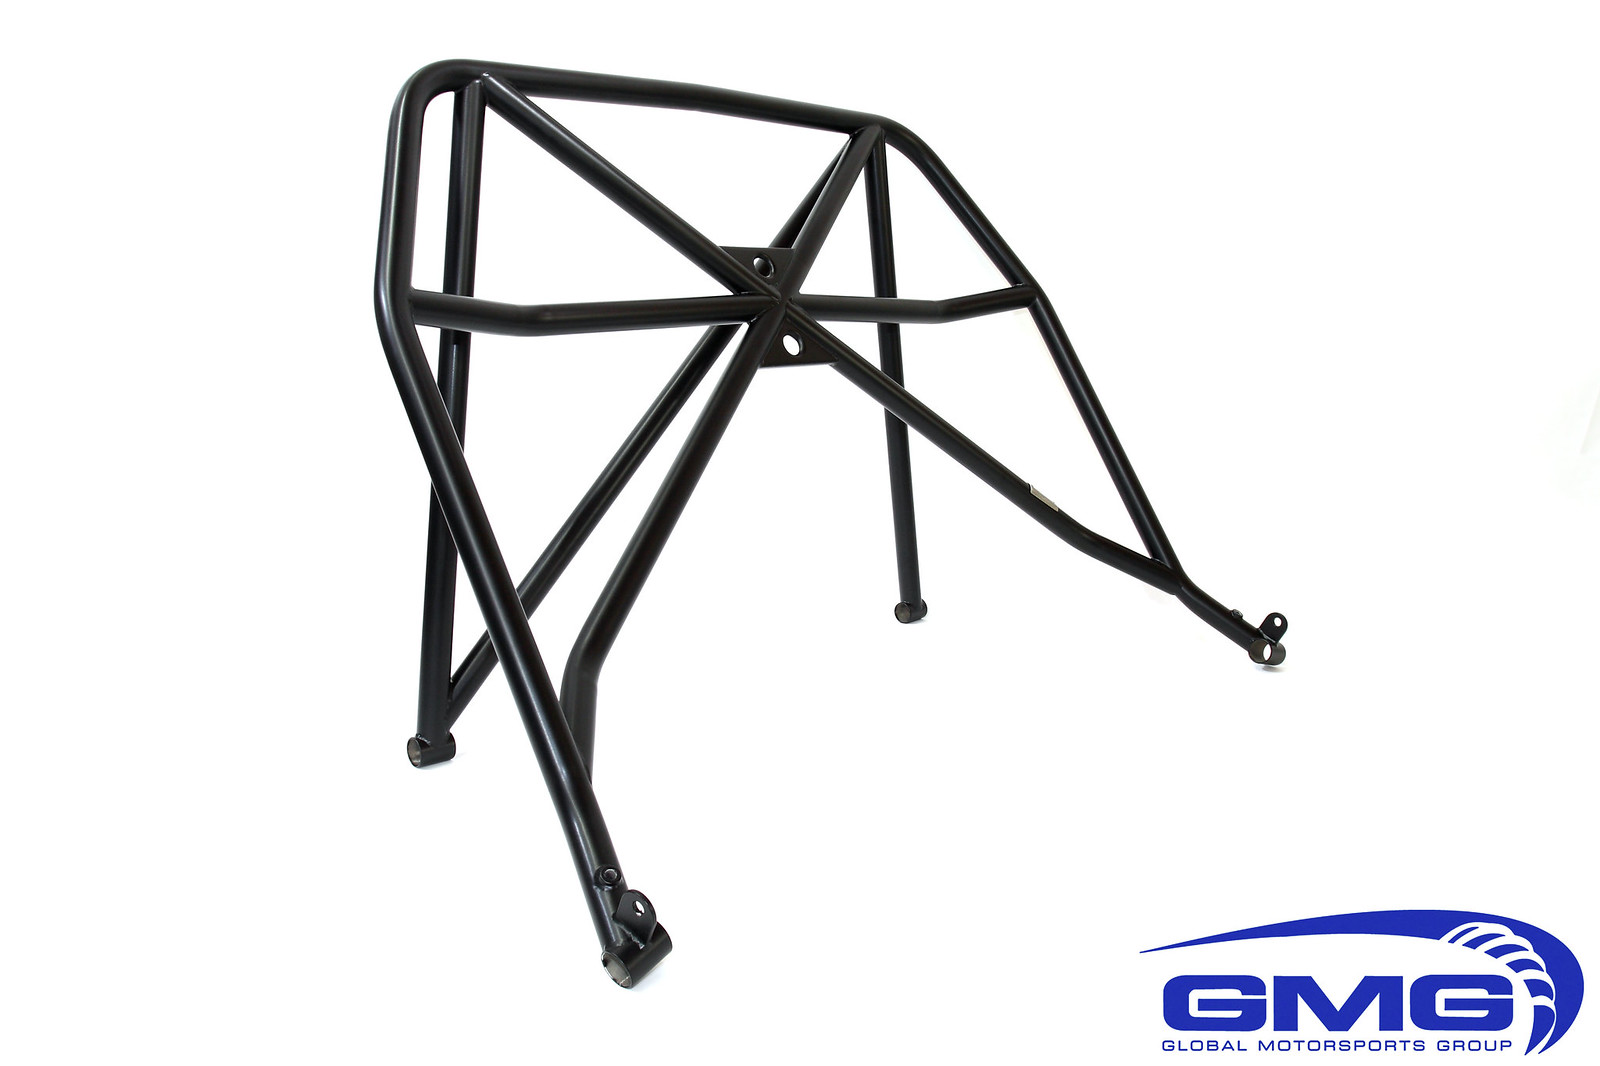 Gmg Racing Wc Roll Bar For Porsche 997 Turbo Now In Stock